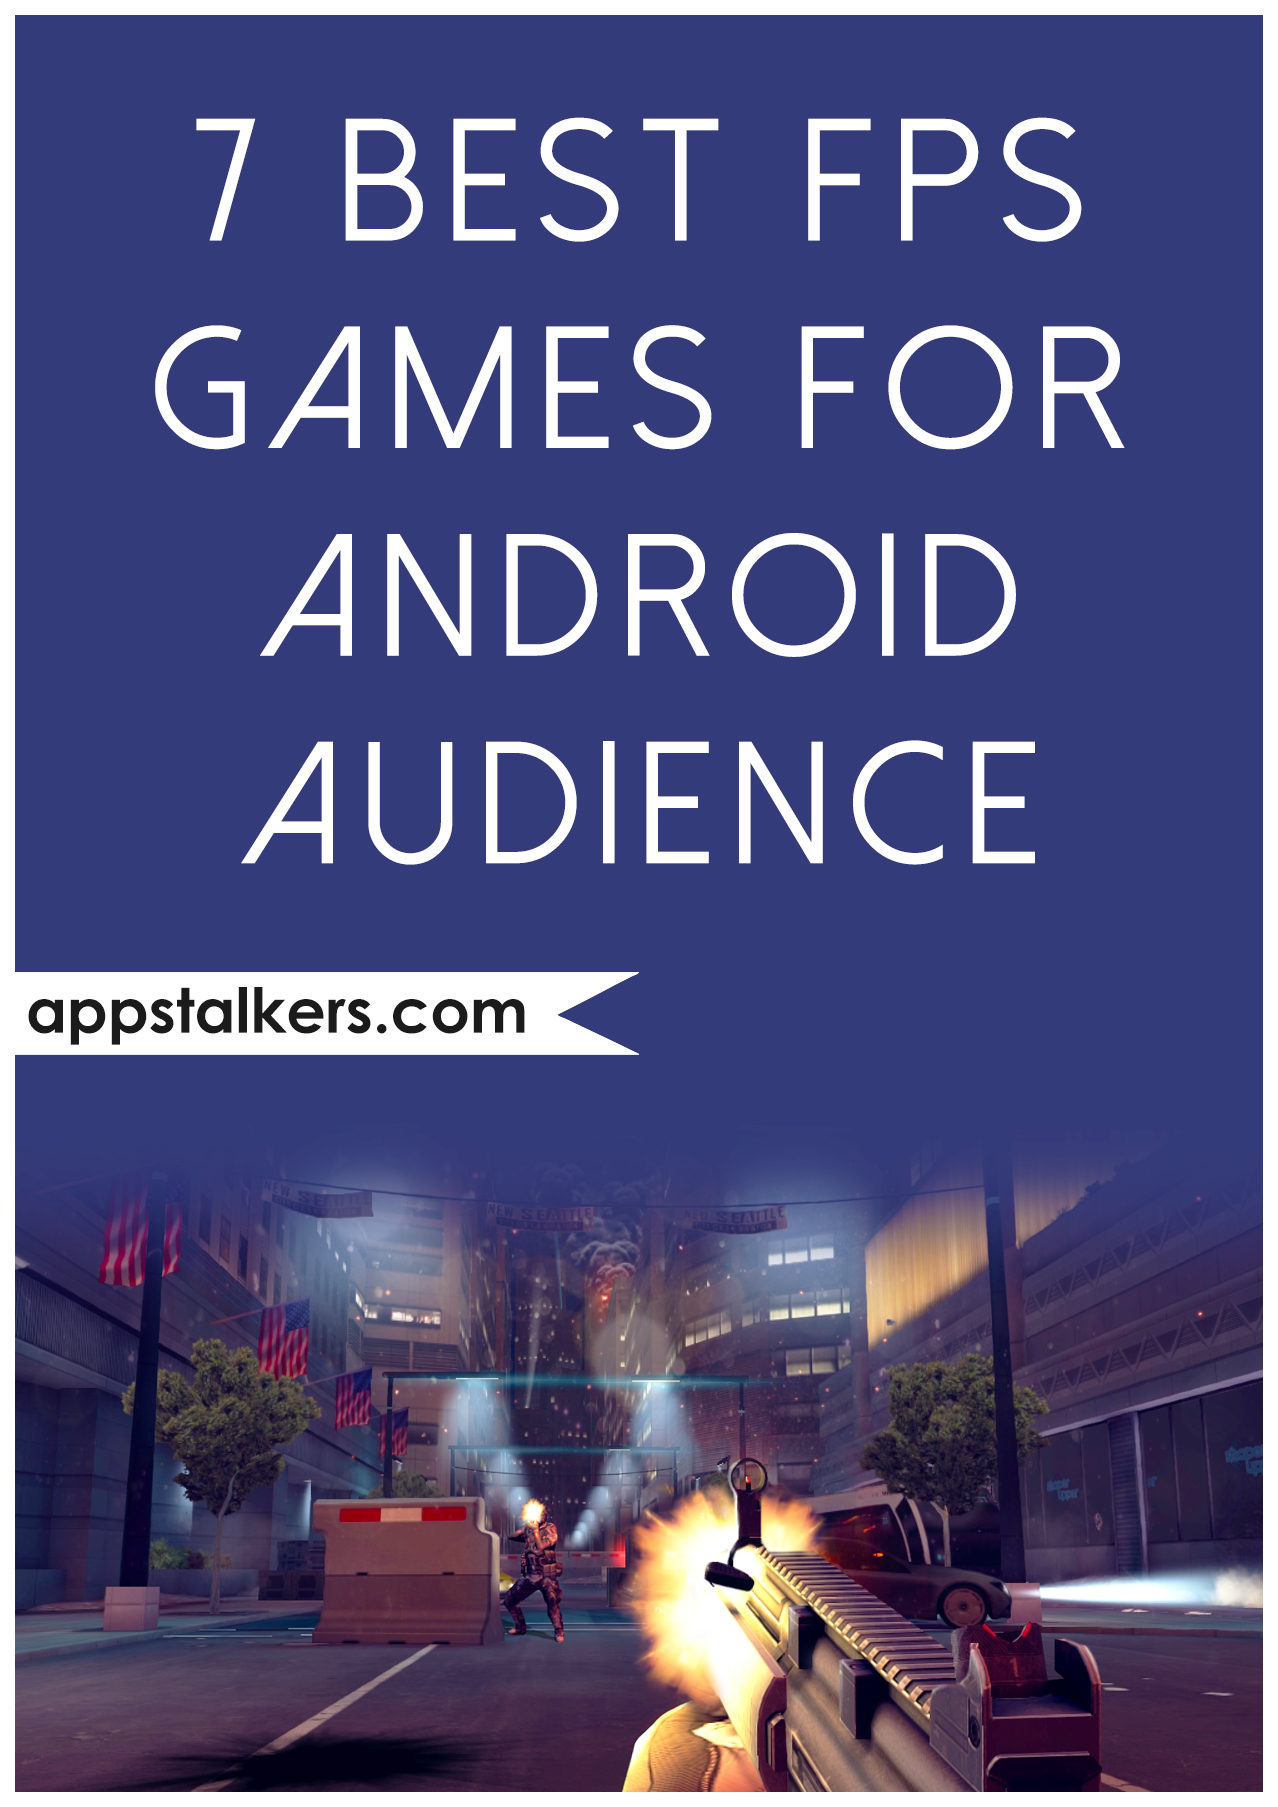 7 Best FPS Games for Android Audience pin